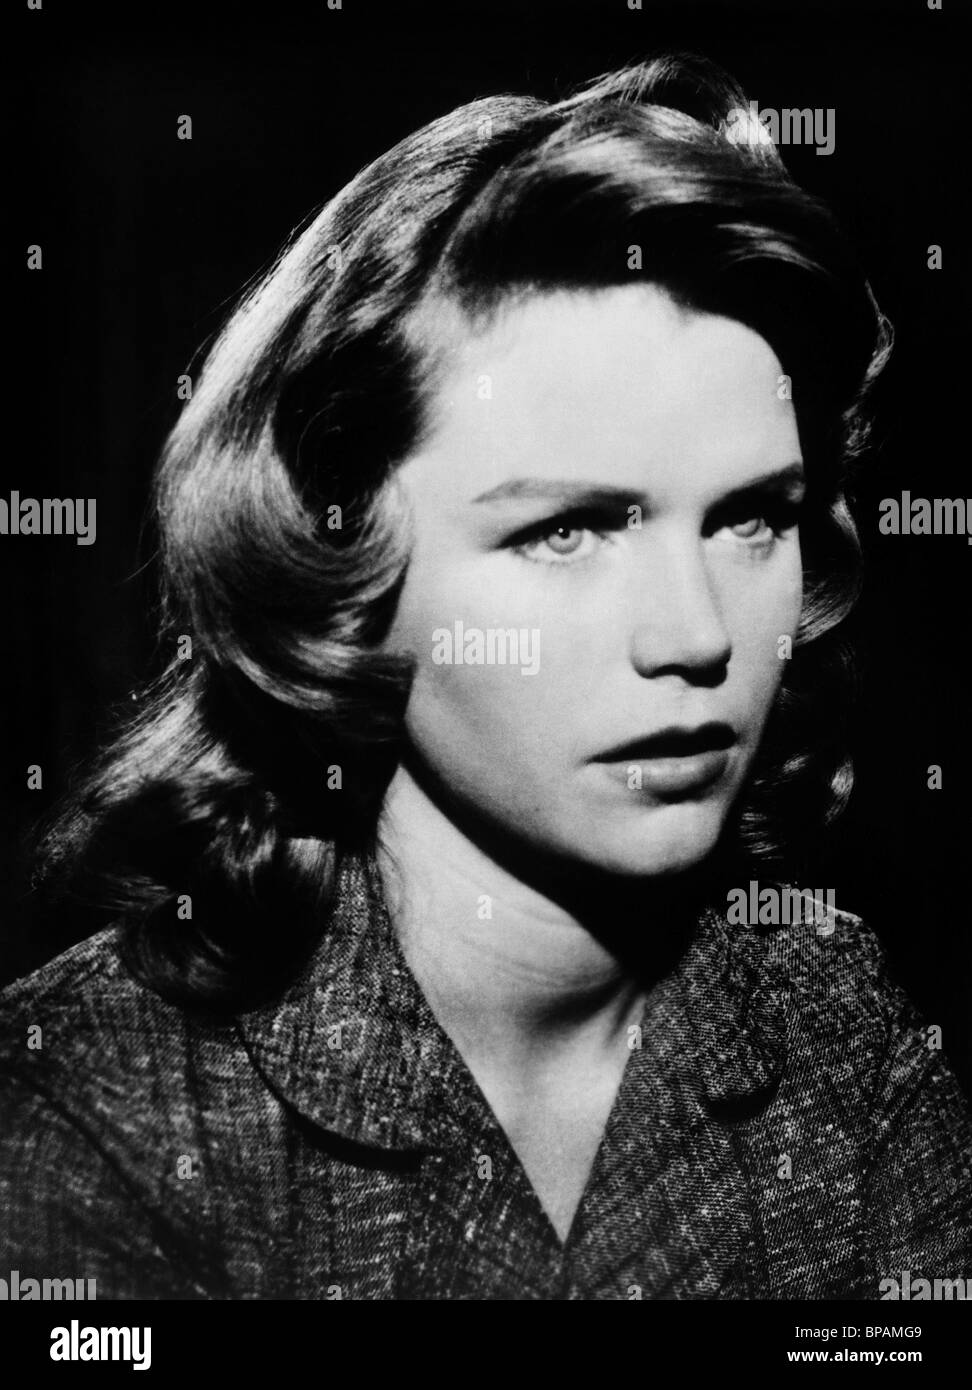 LEE REMICK ANATOMY OF A MURDER (1959 Stock Photo: 30968457 - Alamy